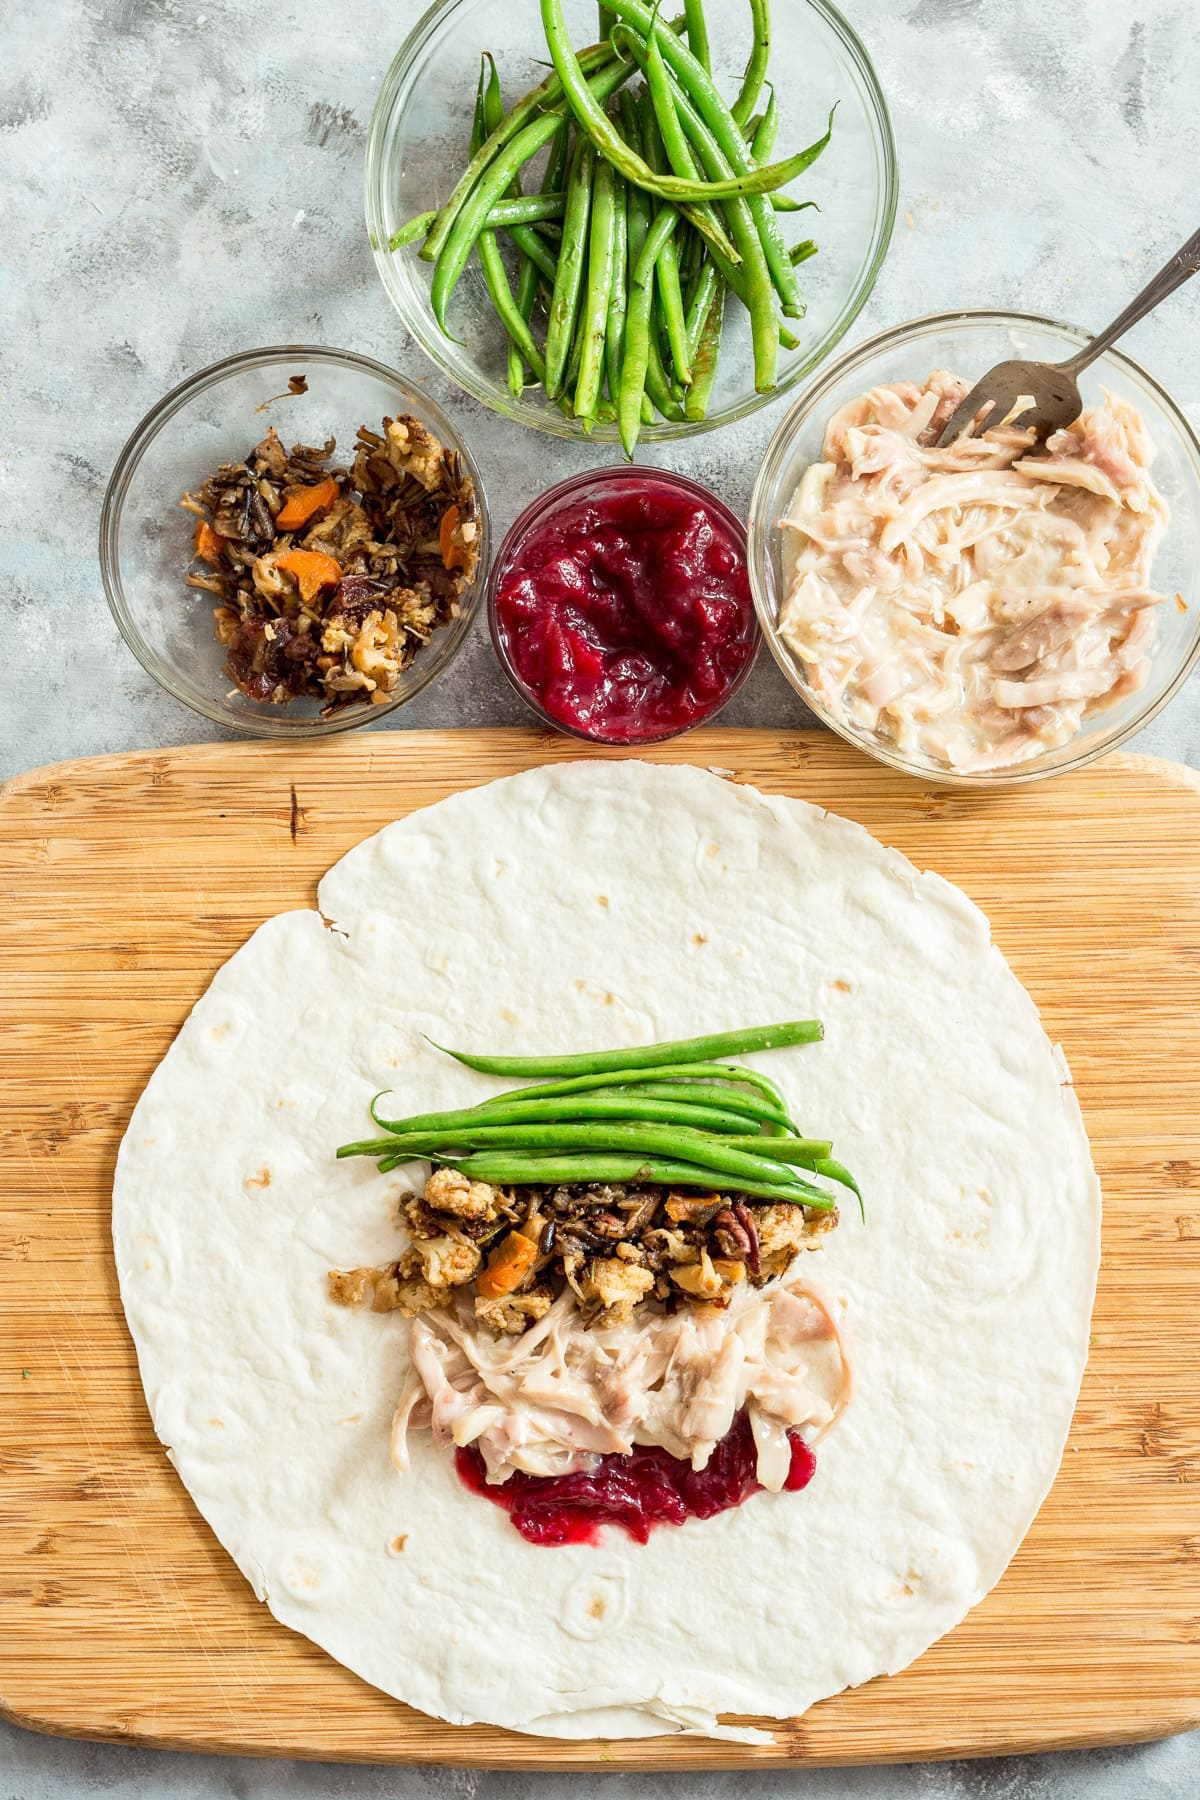 Tortilla with topped with thanksgiving leftovers